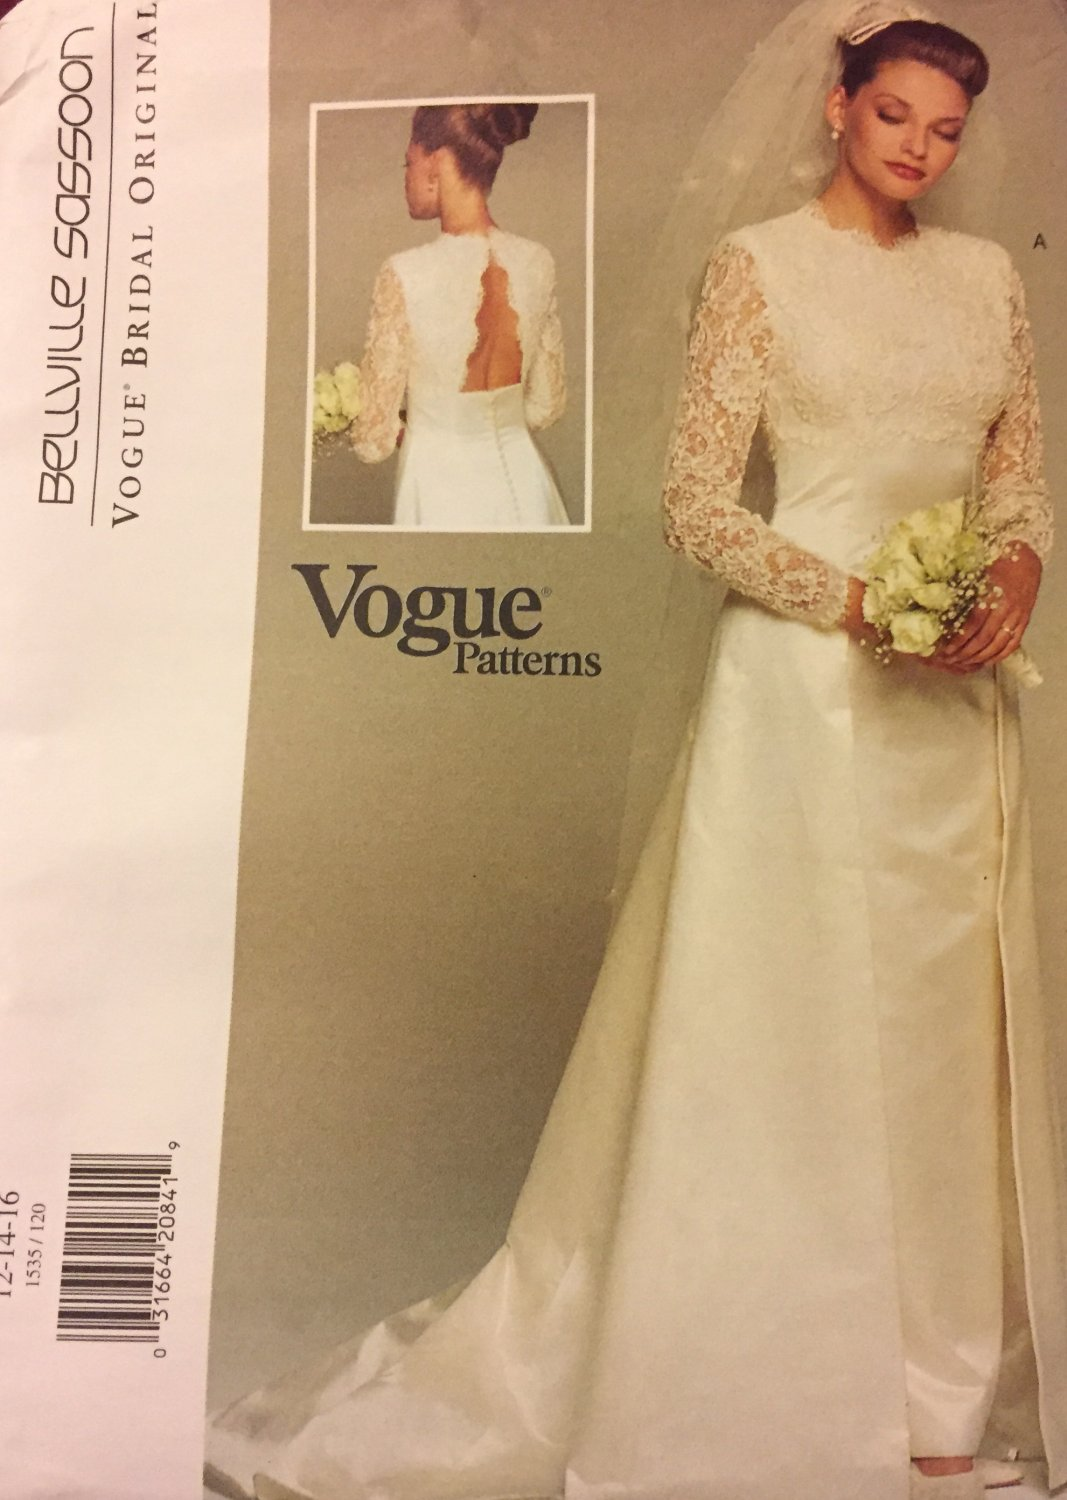 Vogue 1535 Vogue Bridal Original BELLVILLE SASSOON  Bridal Gown Sewing Pattern Sizes 12 - 16